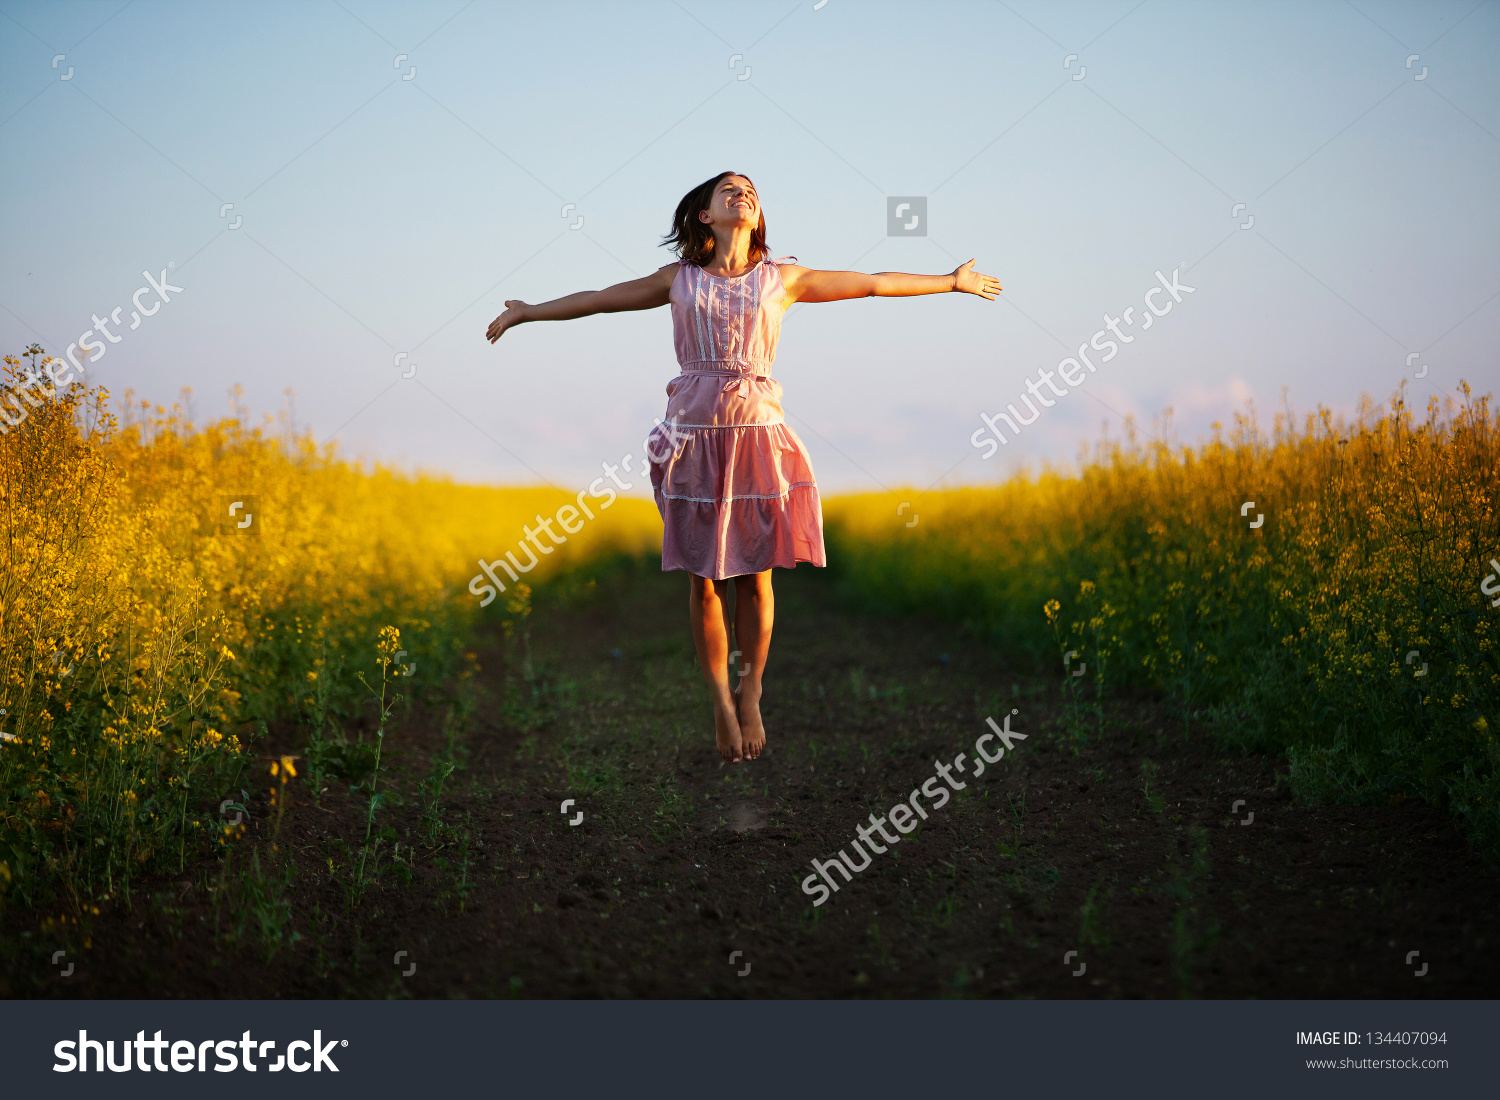 stock-photo-happy-woman-jumps-to-the-sky-in-the-yellow-meadow-at-the-sunset-134407094